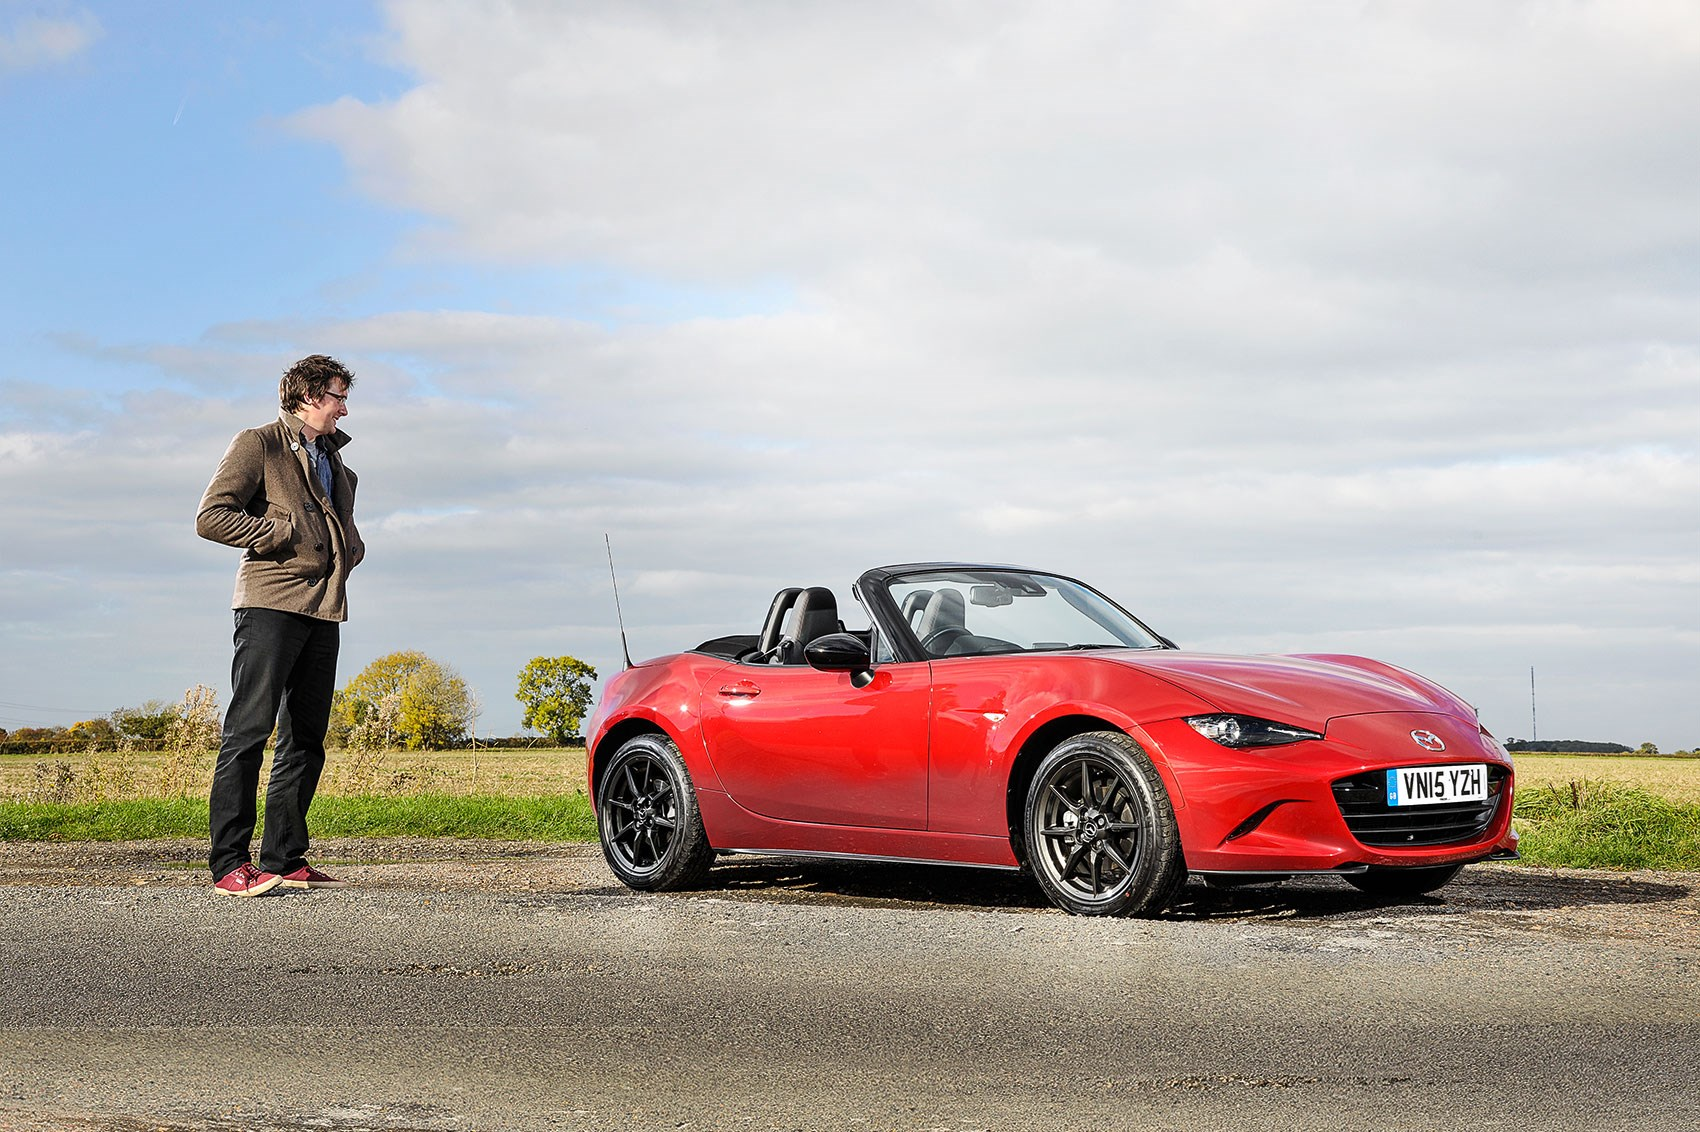 Miata Hits A Million The One Millionth Mazda Mx 5 Produced Car 3 5l Engine Diagram Of Cars Cj Hubbard Meets Our Long Term Love Is In Air